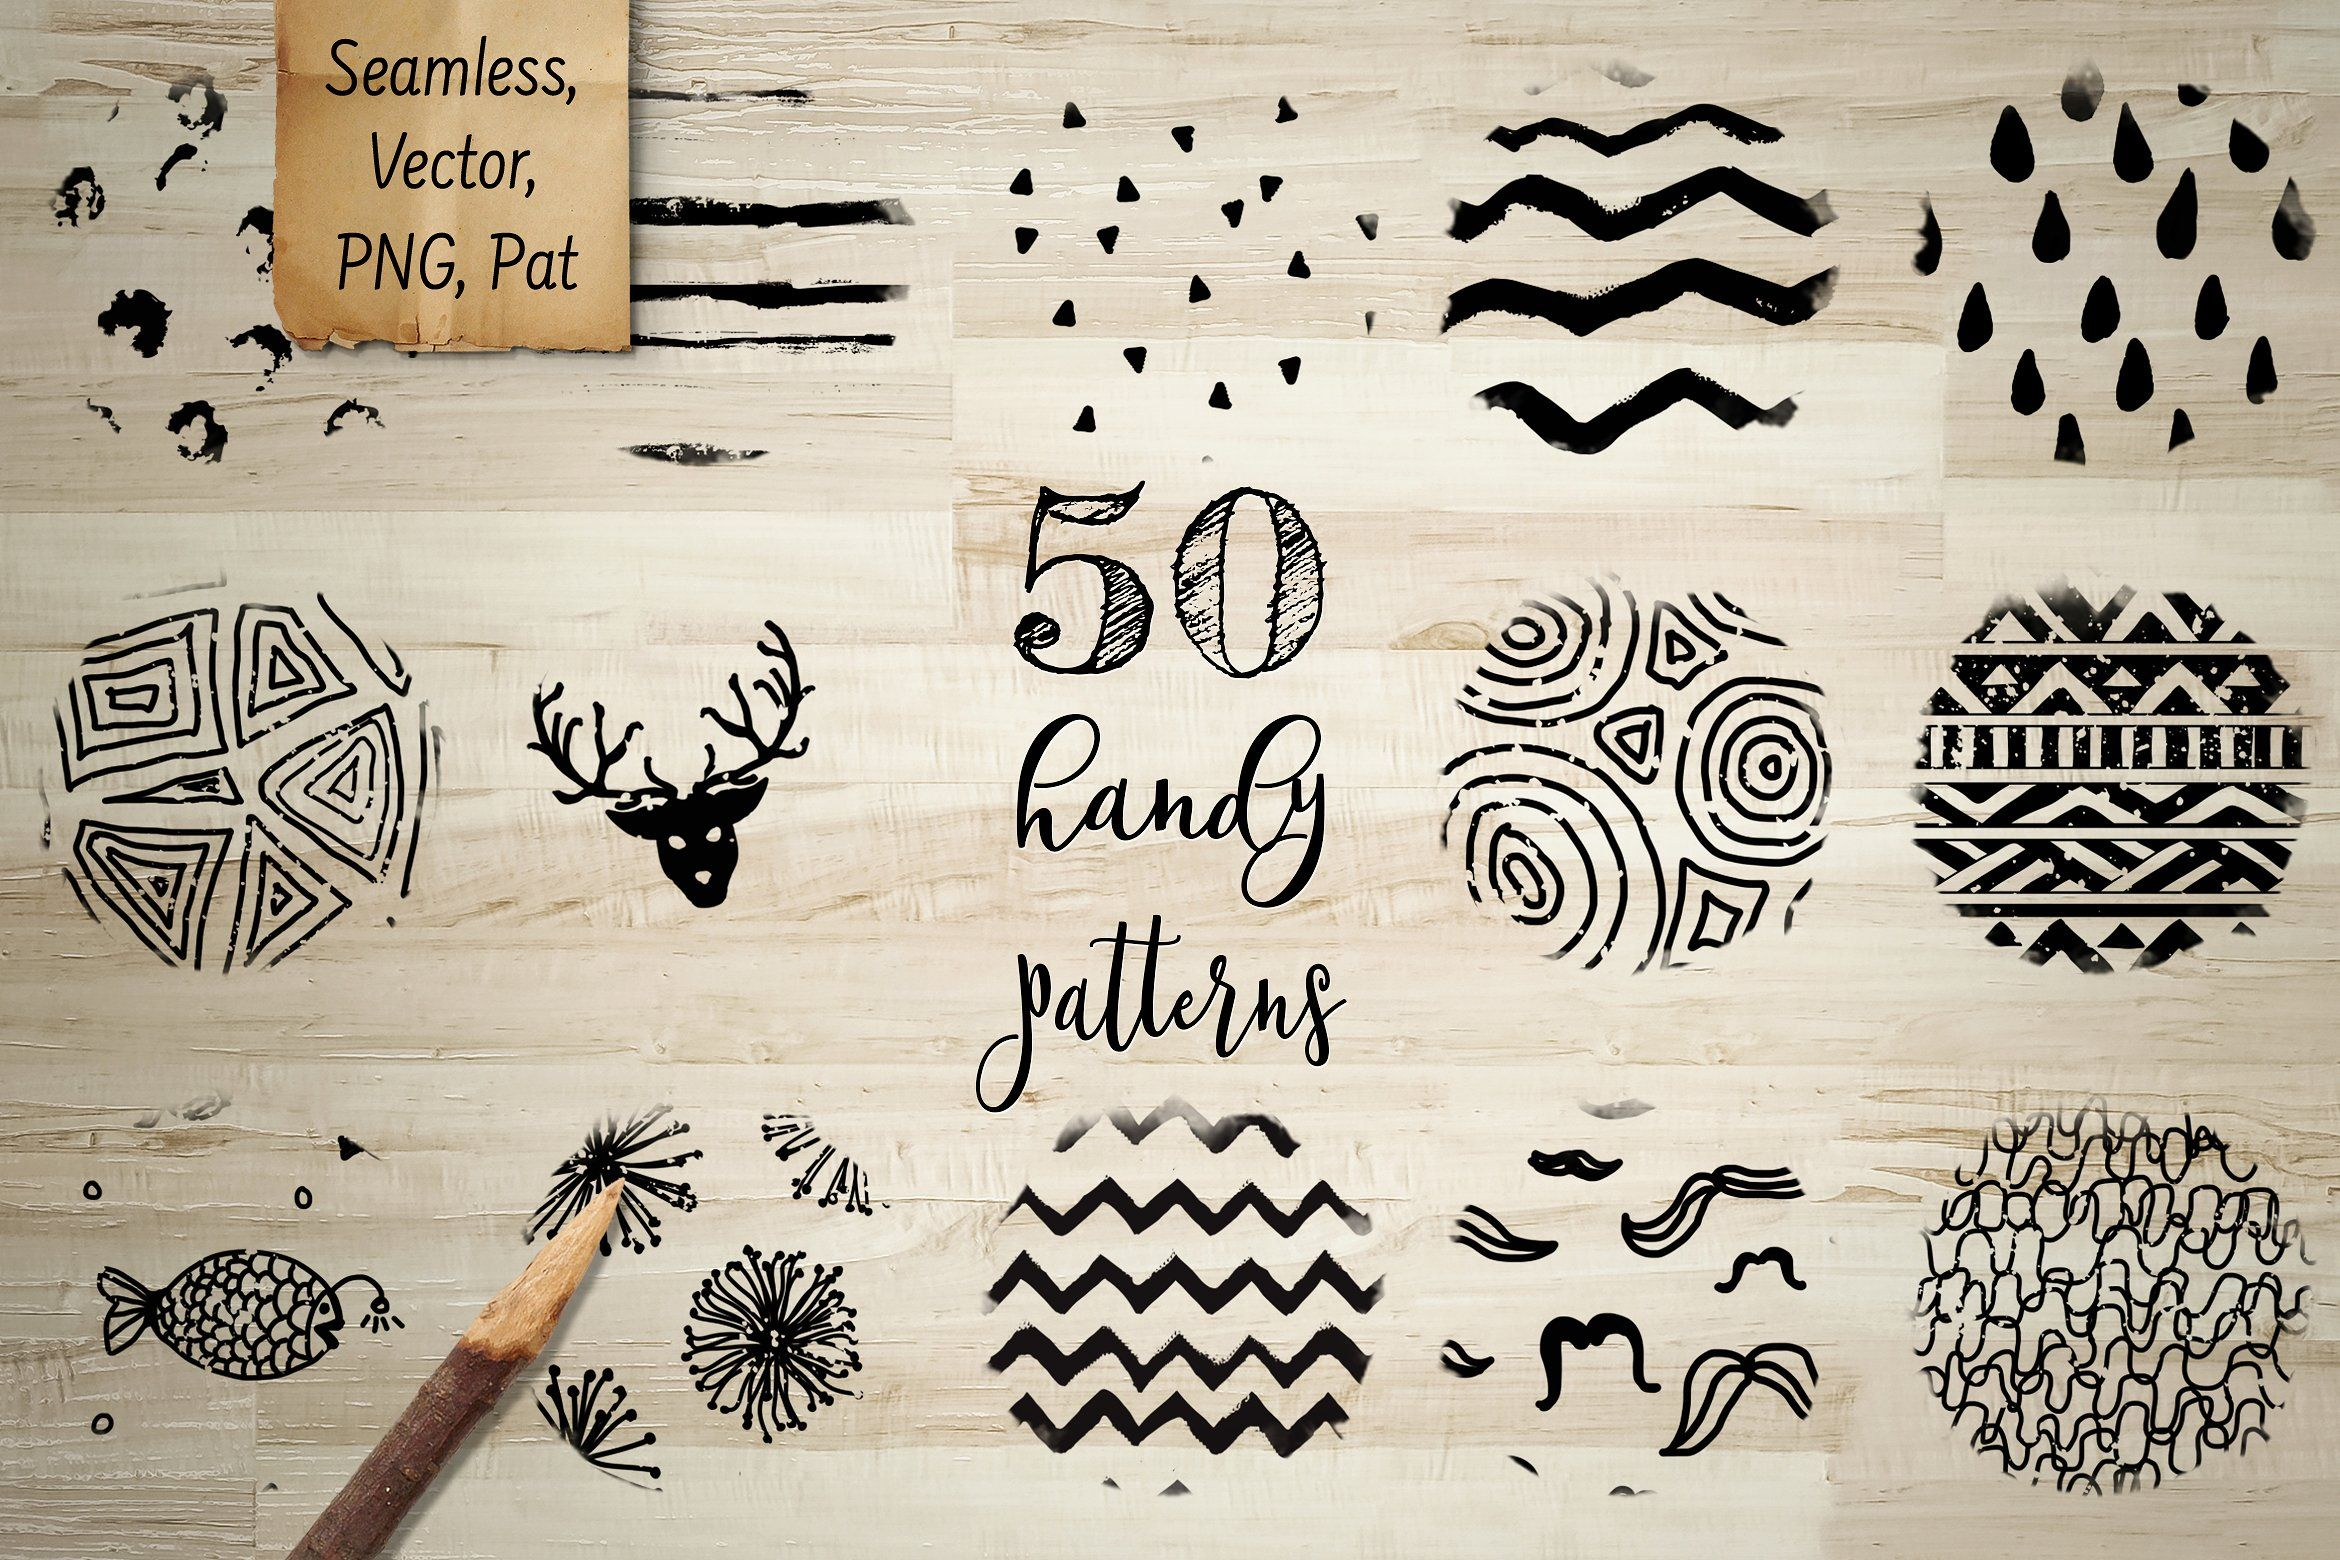 50 Handy Patterns. Very cute doodle seamless patterns #graphicdesign #wrap #wrapping #handdrawn #doodle #patterns #textures #background #chevron #dots #spots #triangles #stripes #seamless